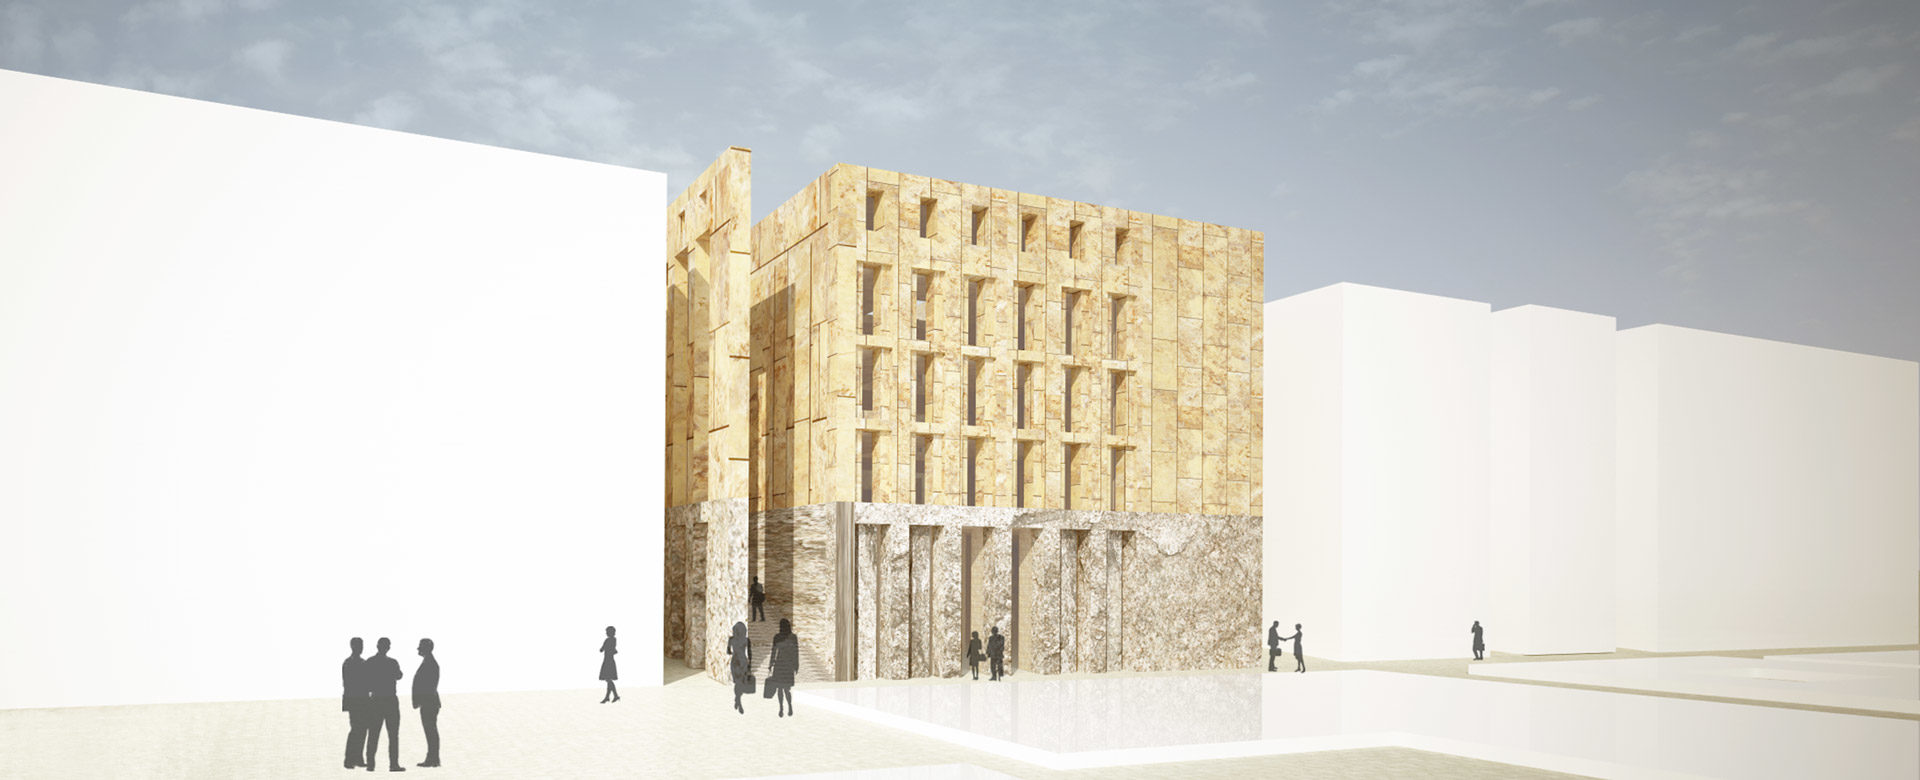 render of facade